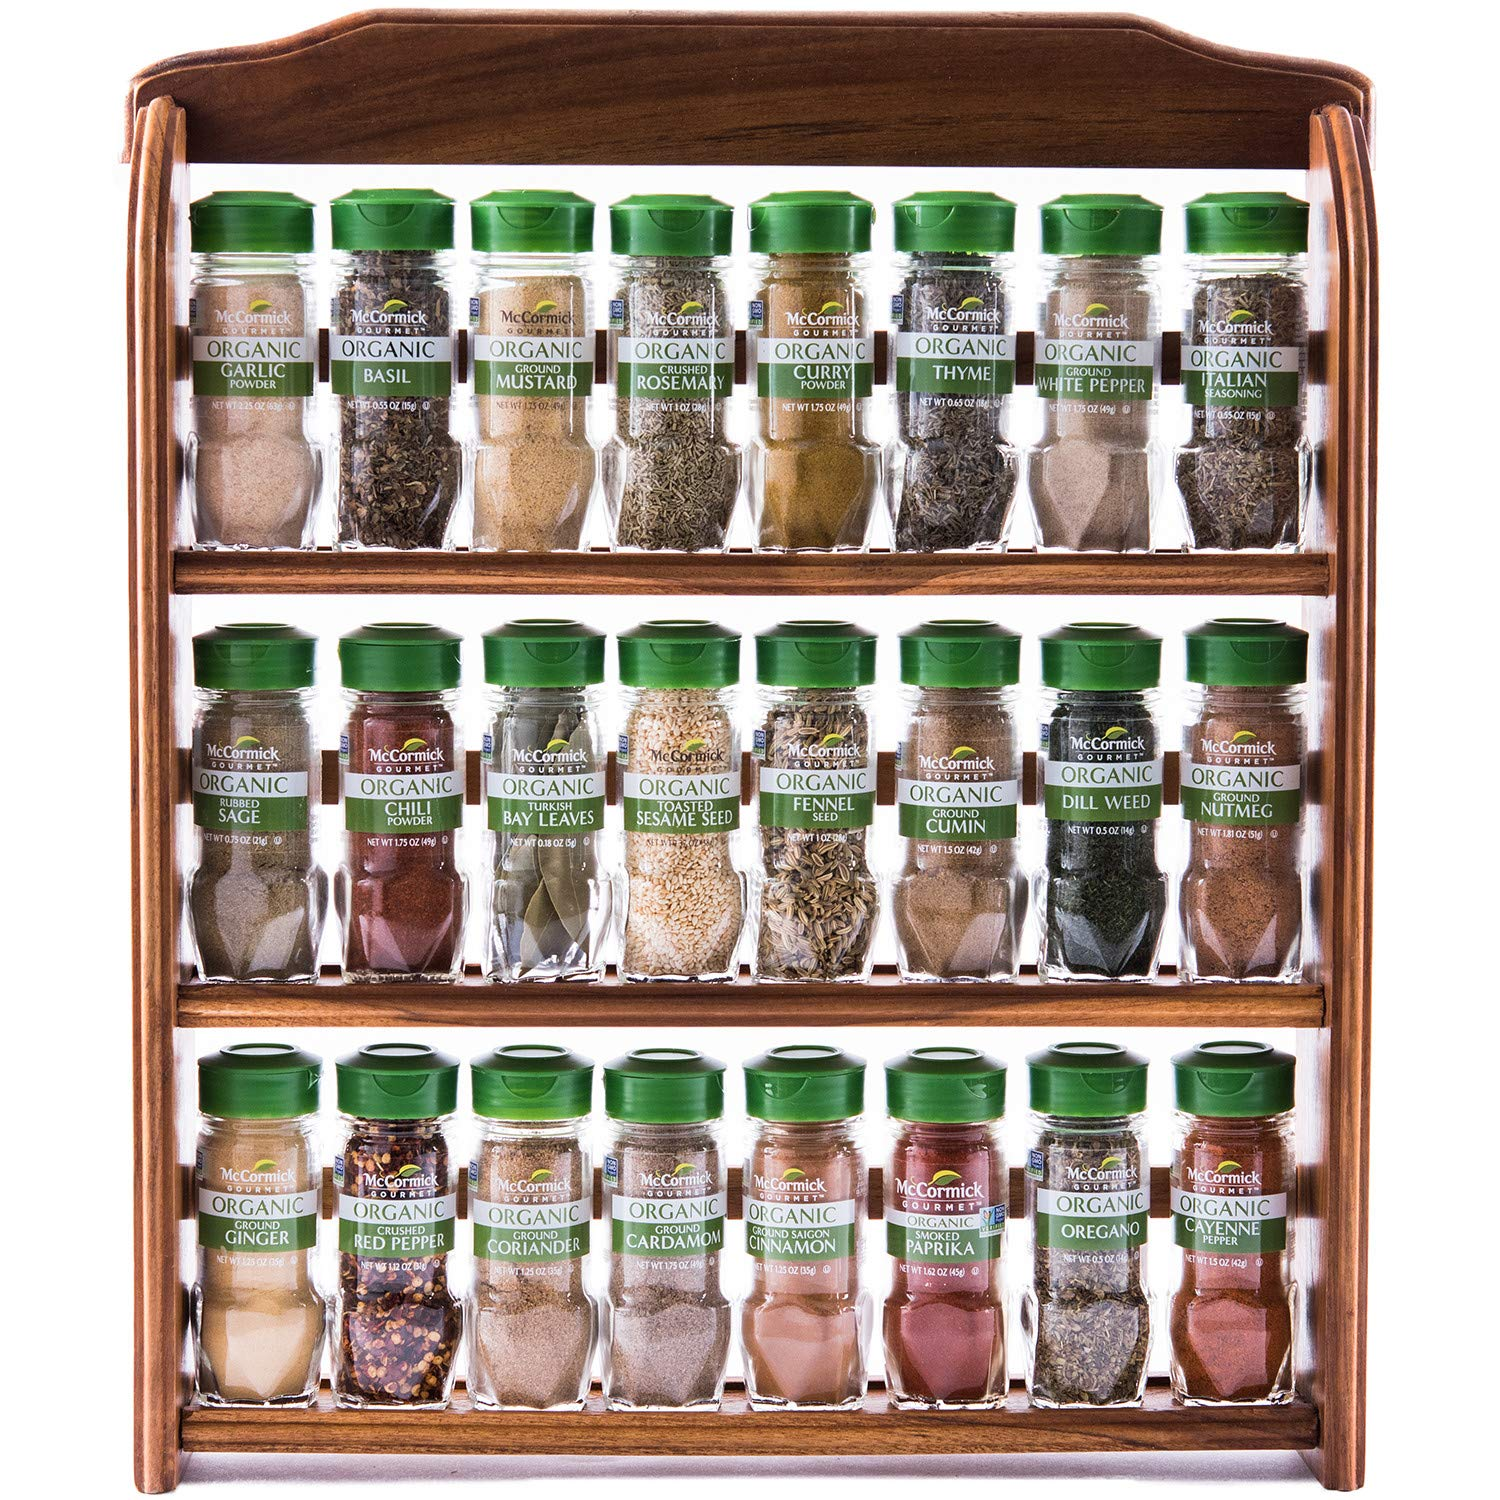 McCormick GourmetThree Tier Wood 24 Piece Organic Spice Rack (Spices Included, 3 Spice Rack Shelves, 24 Herbs & Spices), 27.6 oz